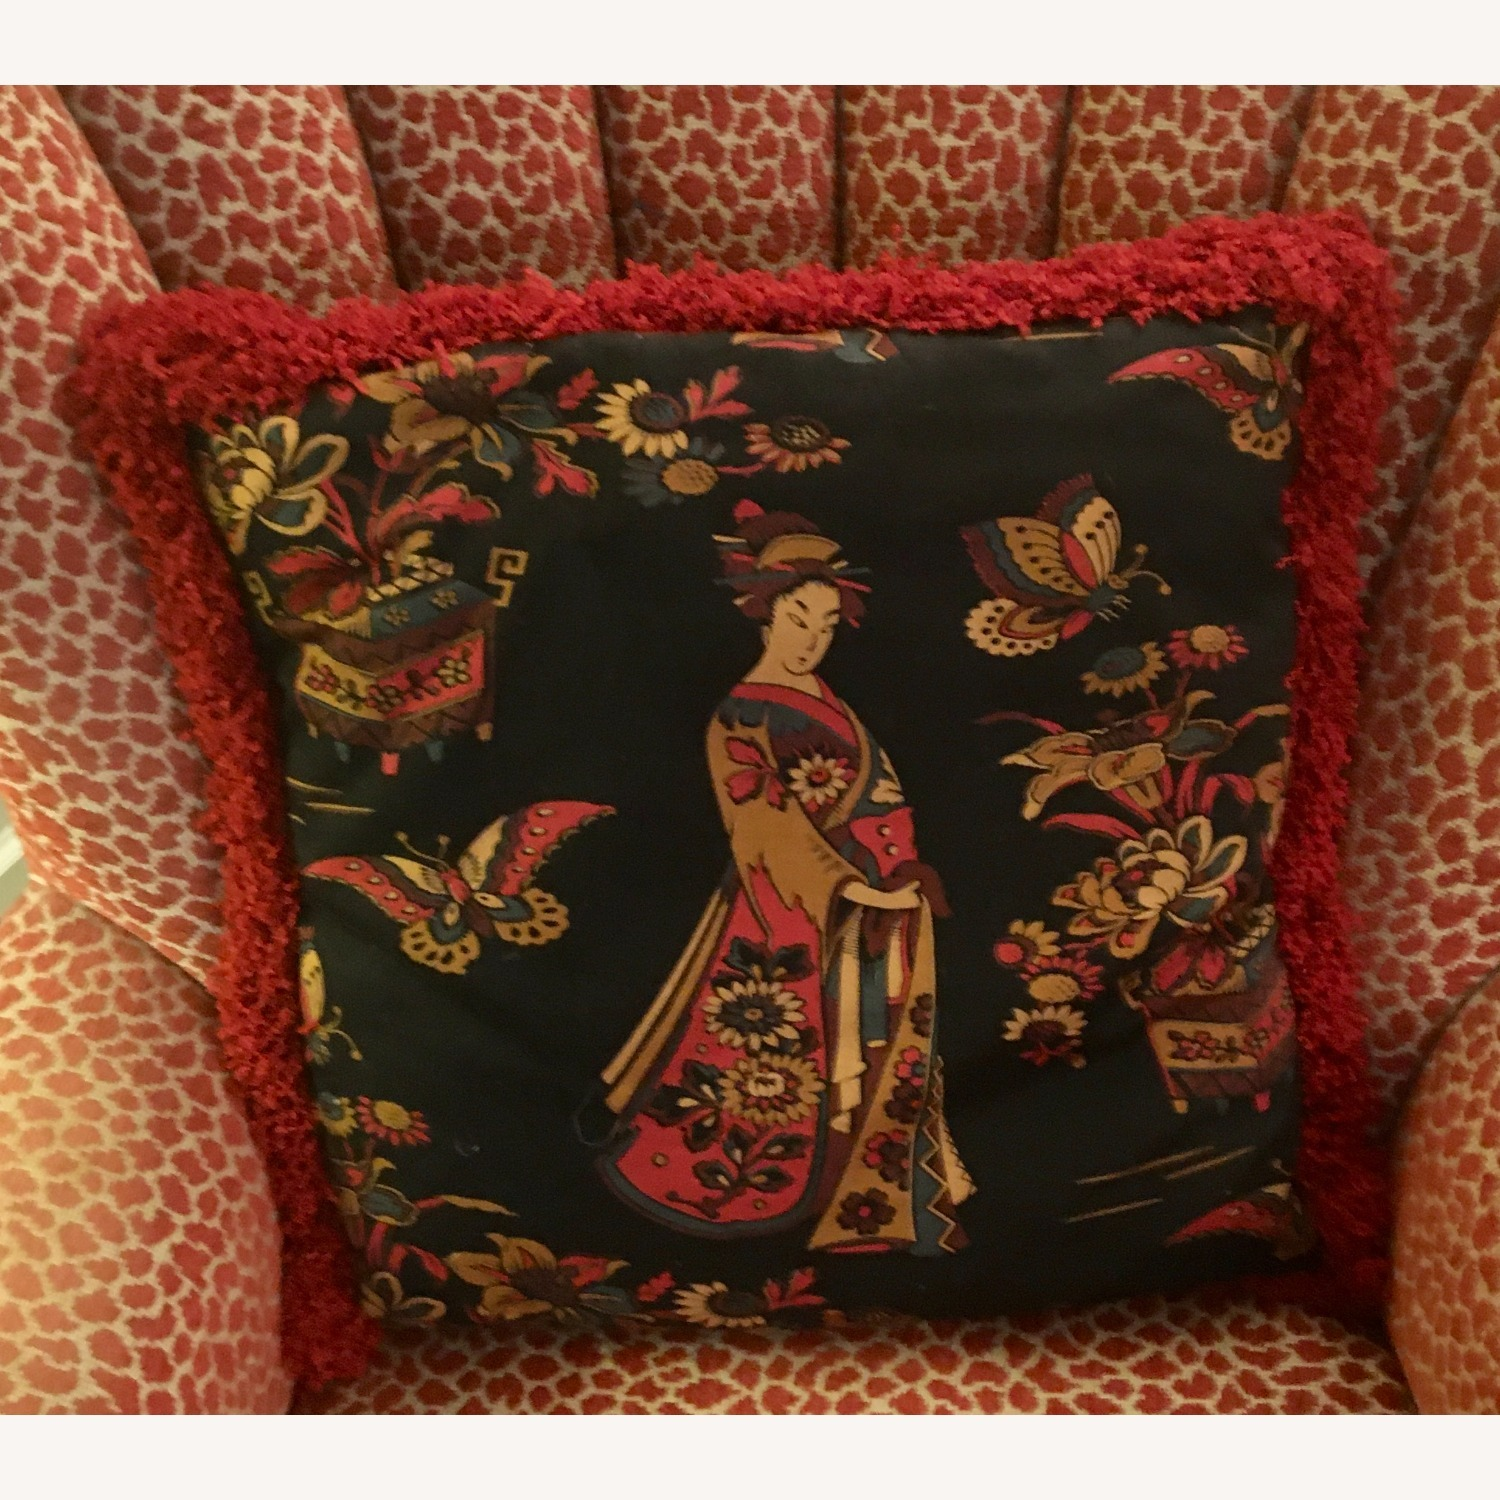 Multi-colored Decorative Pillow with Geisha - image-1